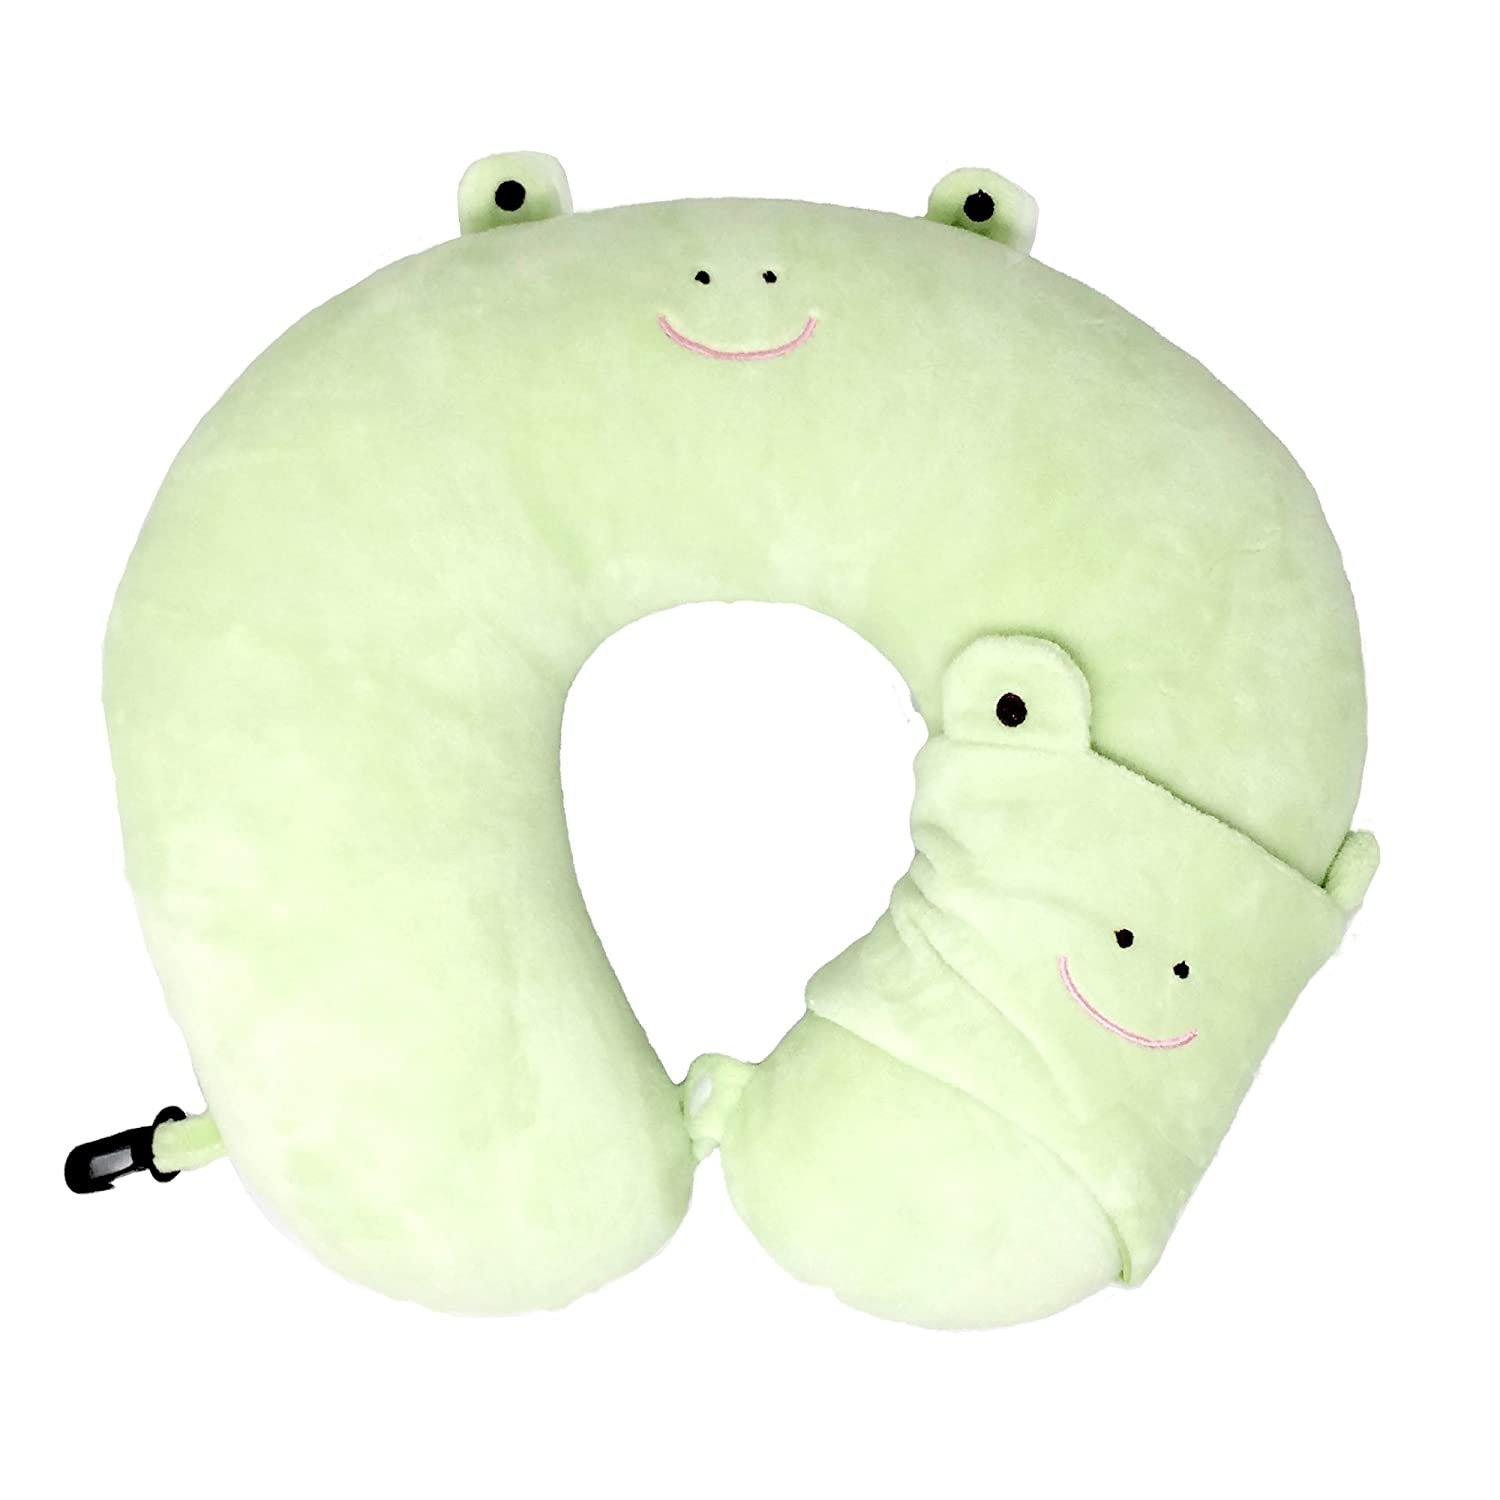 快適Kid 's Travel Neck Pillow with Sleeping Mask 11.5 x 11 x 3 inches グリーン  フロッグ(Frog) B0732XPDZW